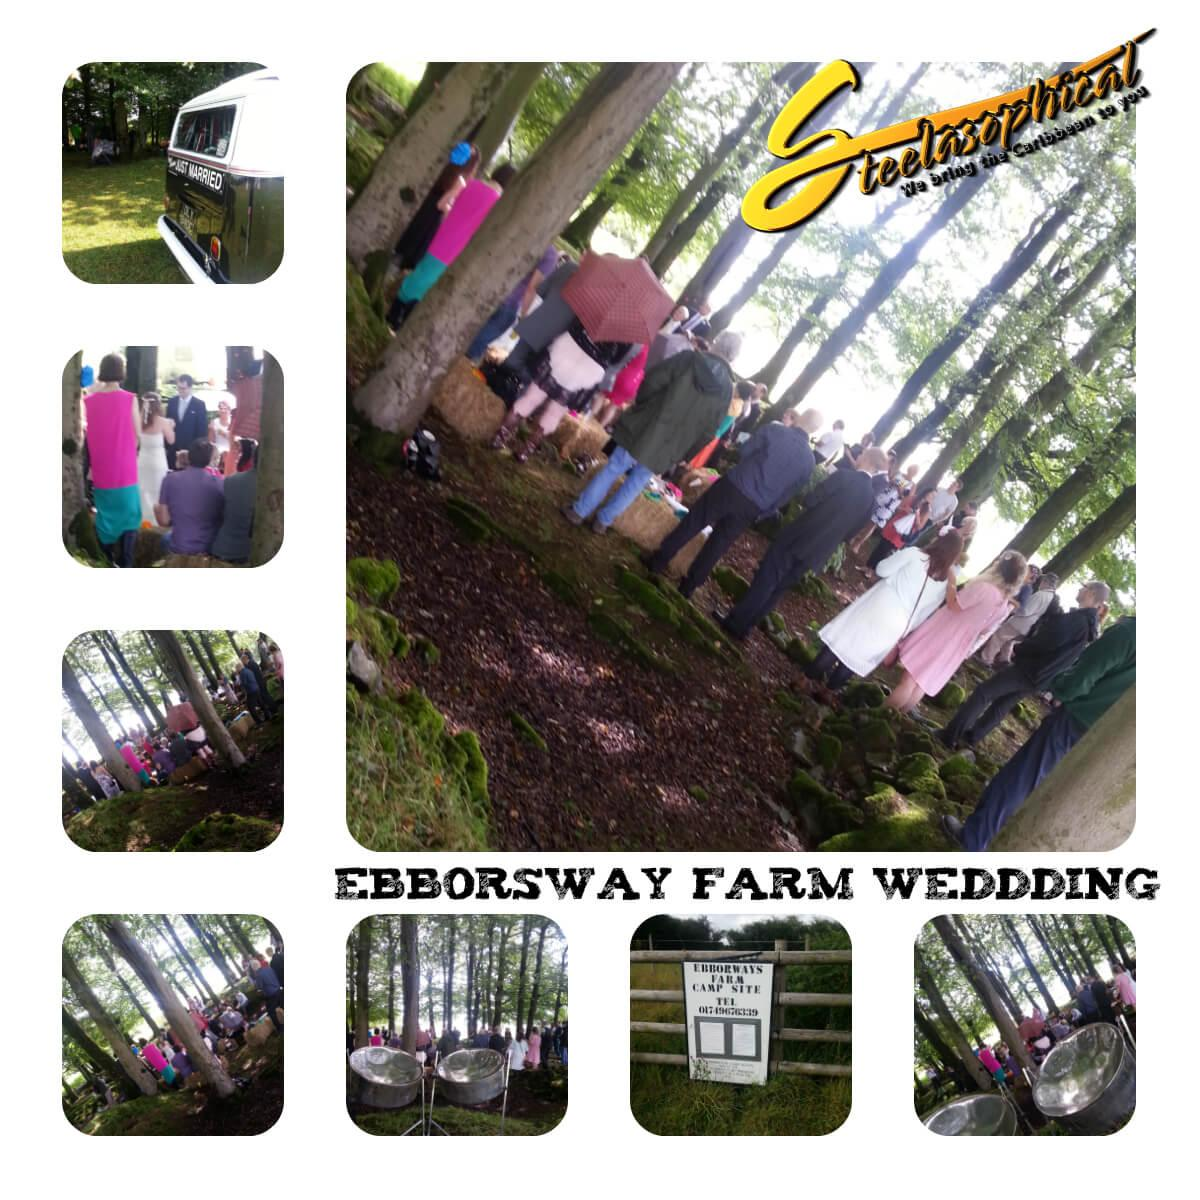 Steelband steelpan steeldrums steelasophical music hire uk Ebborsway Farm Wedding